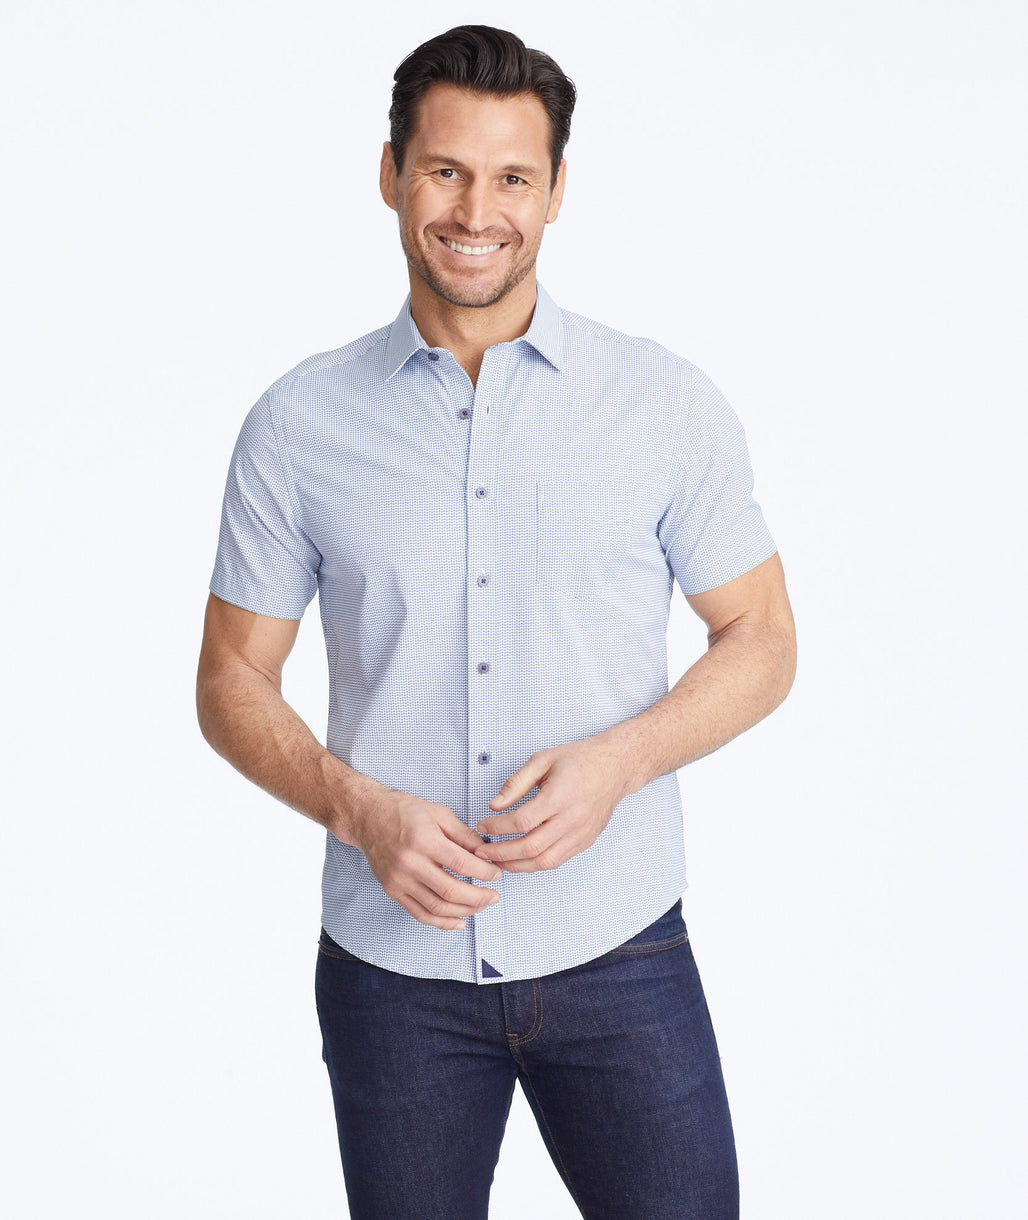 Model wearing a Navy Wrinkle-Free Performance Short-Sleeve Tiefenbrunner Shirt